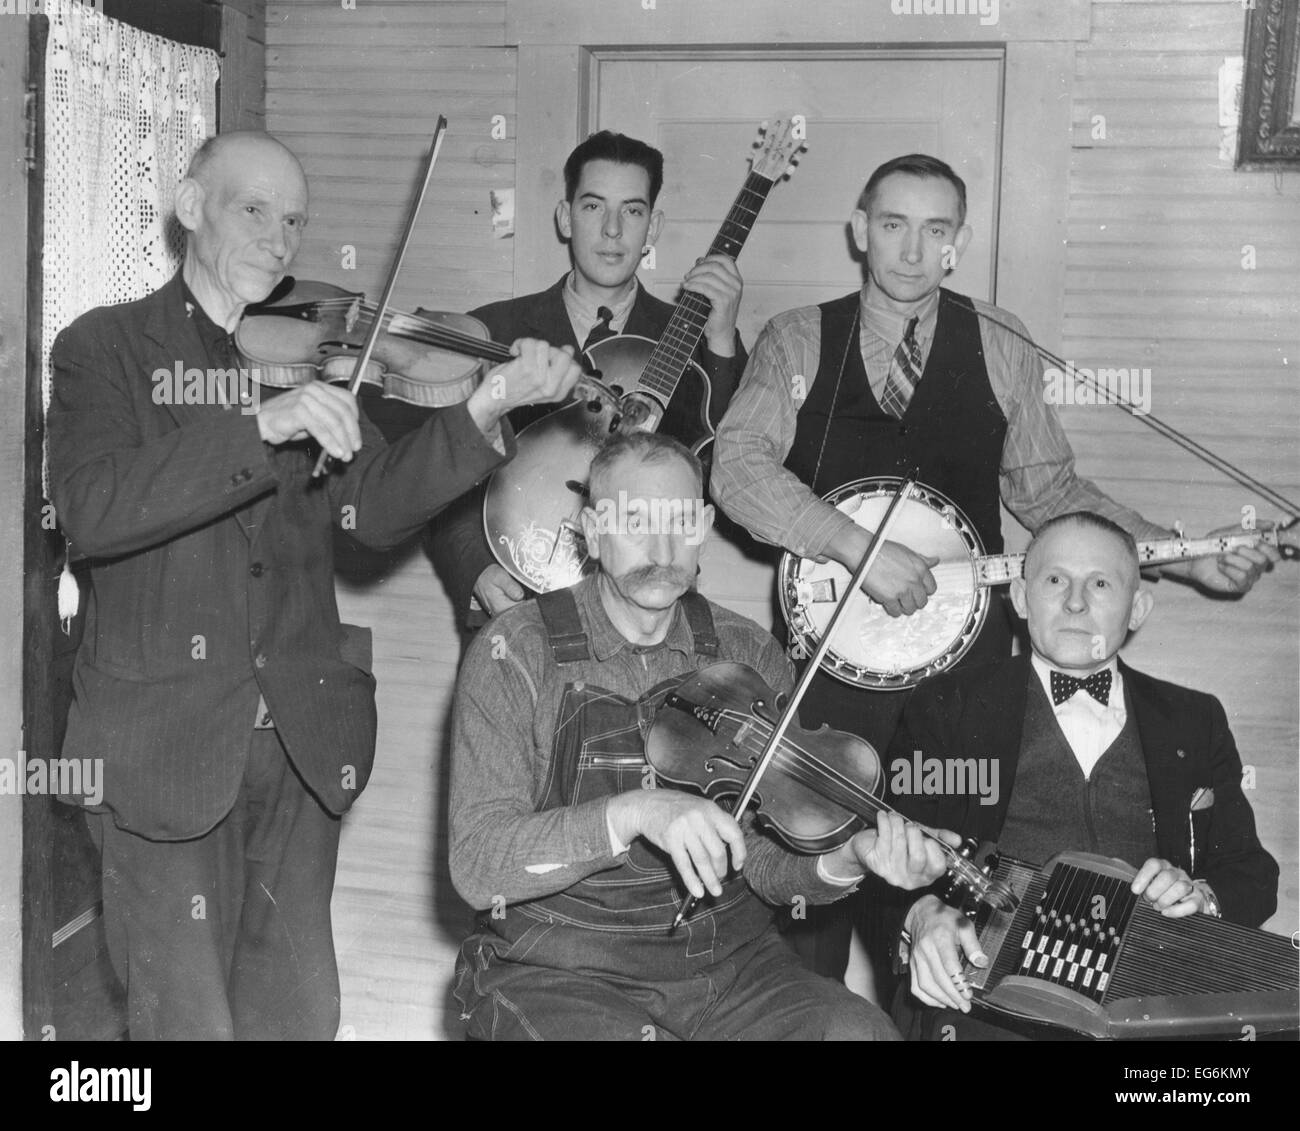 Members of the Bog Trotters Band posed holding their instruments, Galax, Va, 1937 - Stock Image